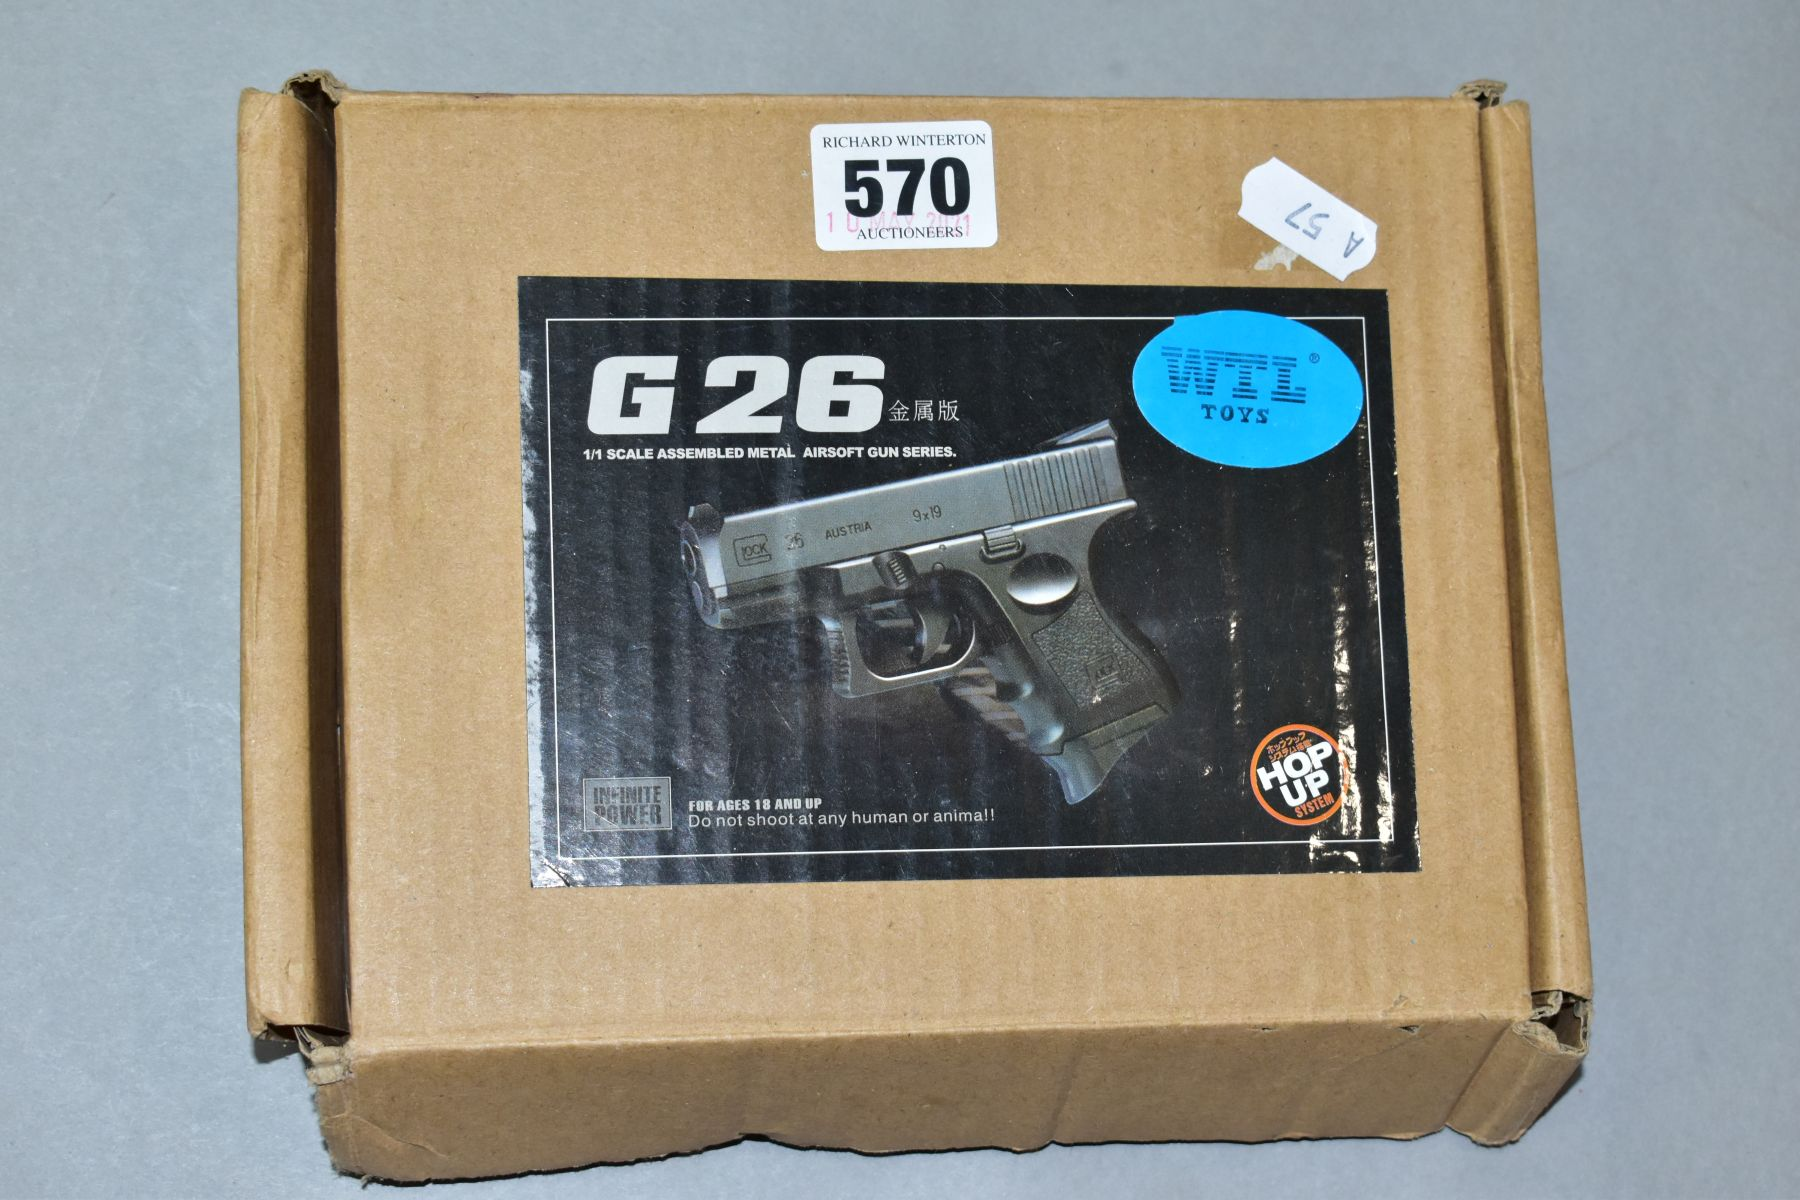 A BOXED G26 AIRSOFT GUN, blue, manufactured in China, with a small quantity of balls (PURCHASER MUST - Image 2 of 2